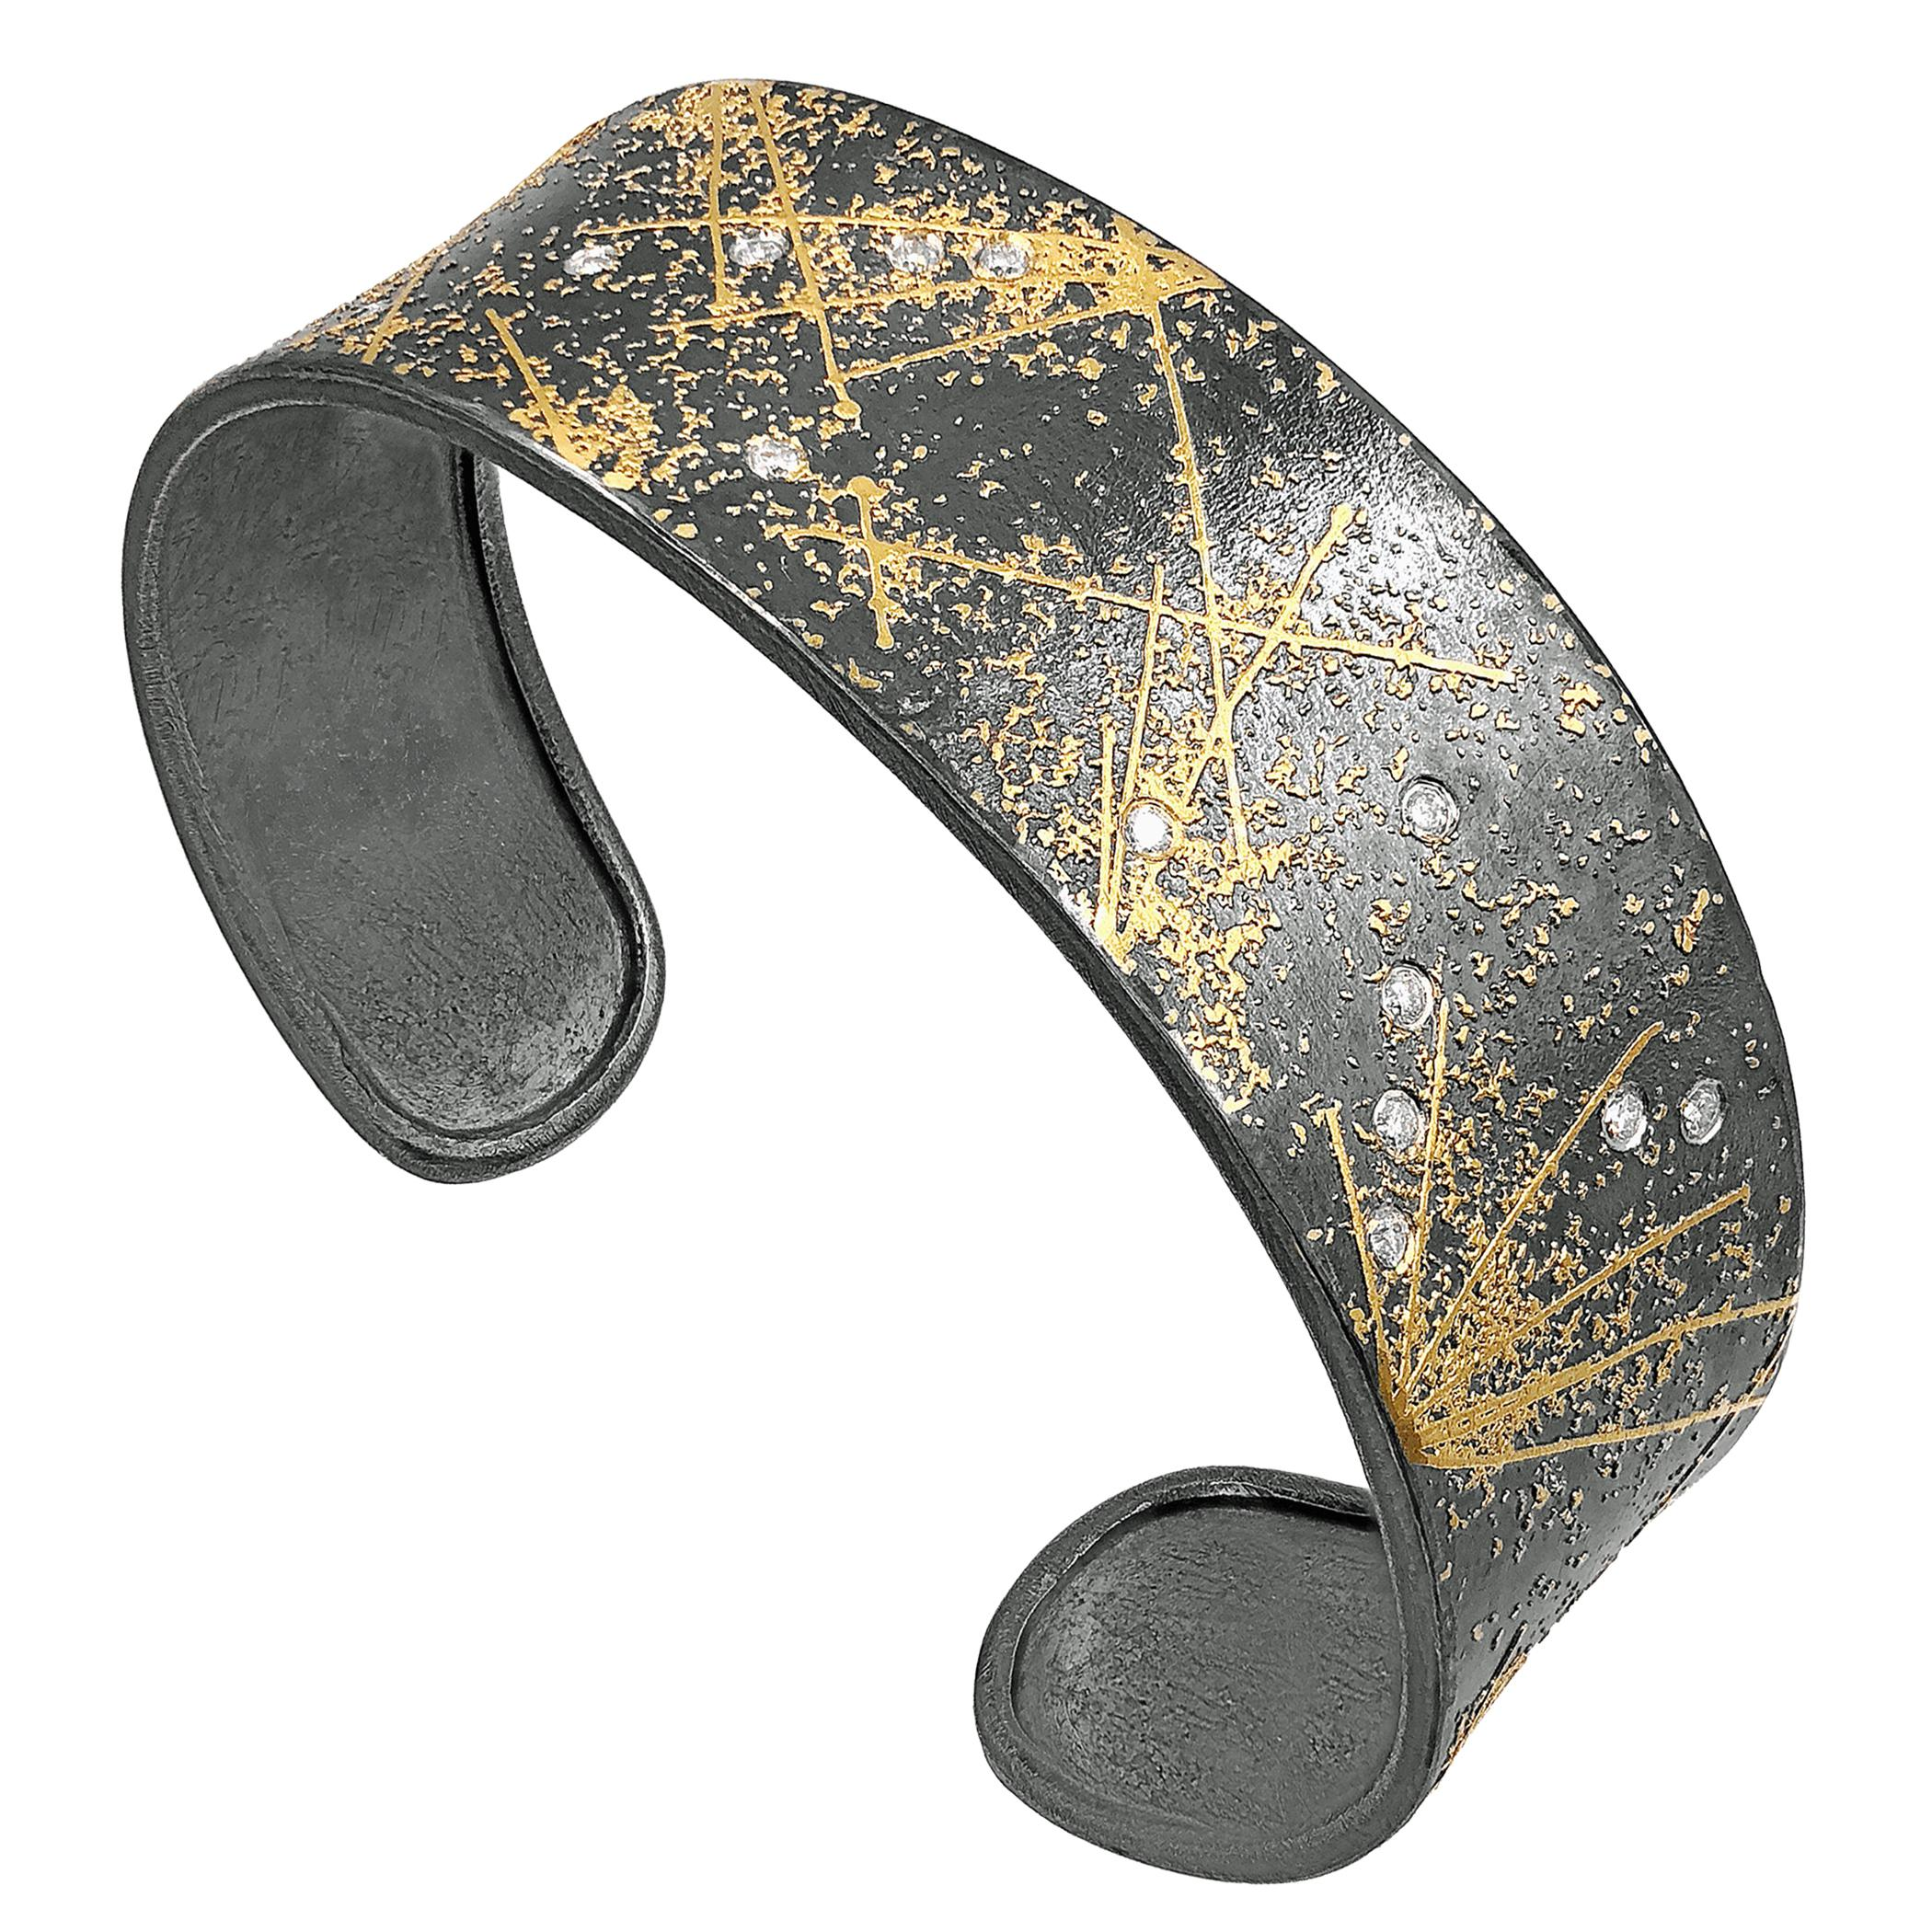 Atelier Zobel One of a Kind White Diamond Oxidized Silver Gold Fireworks Cuff